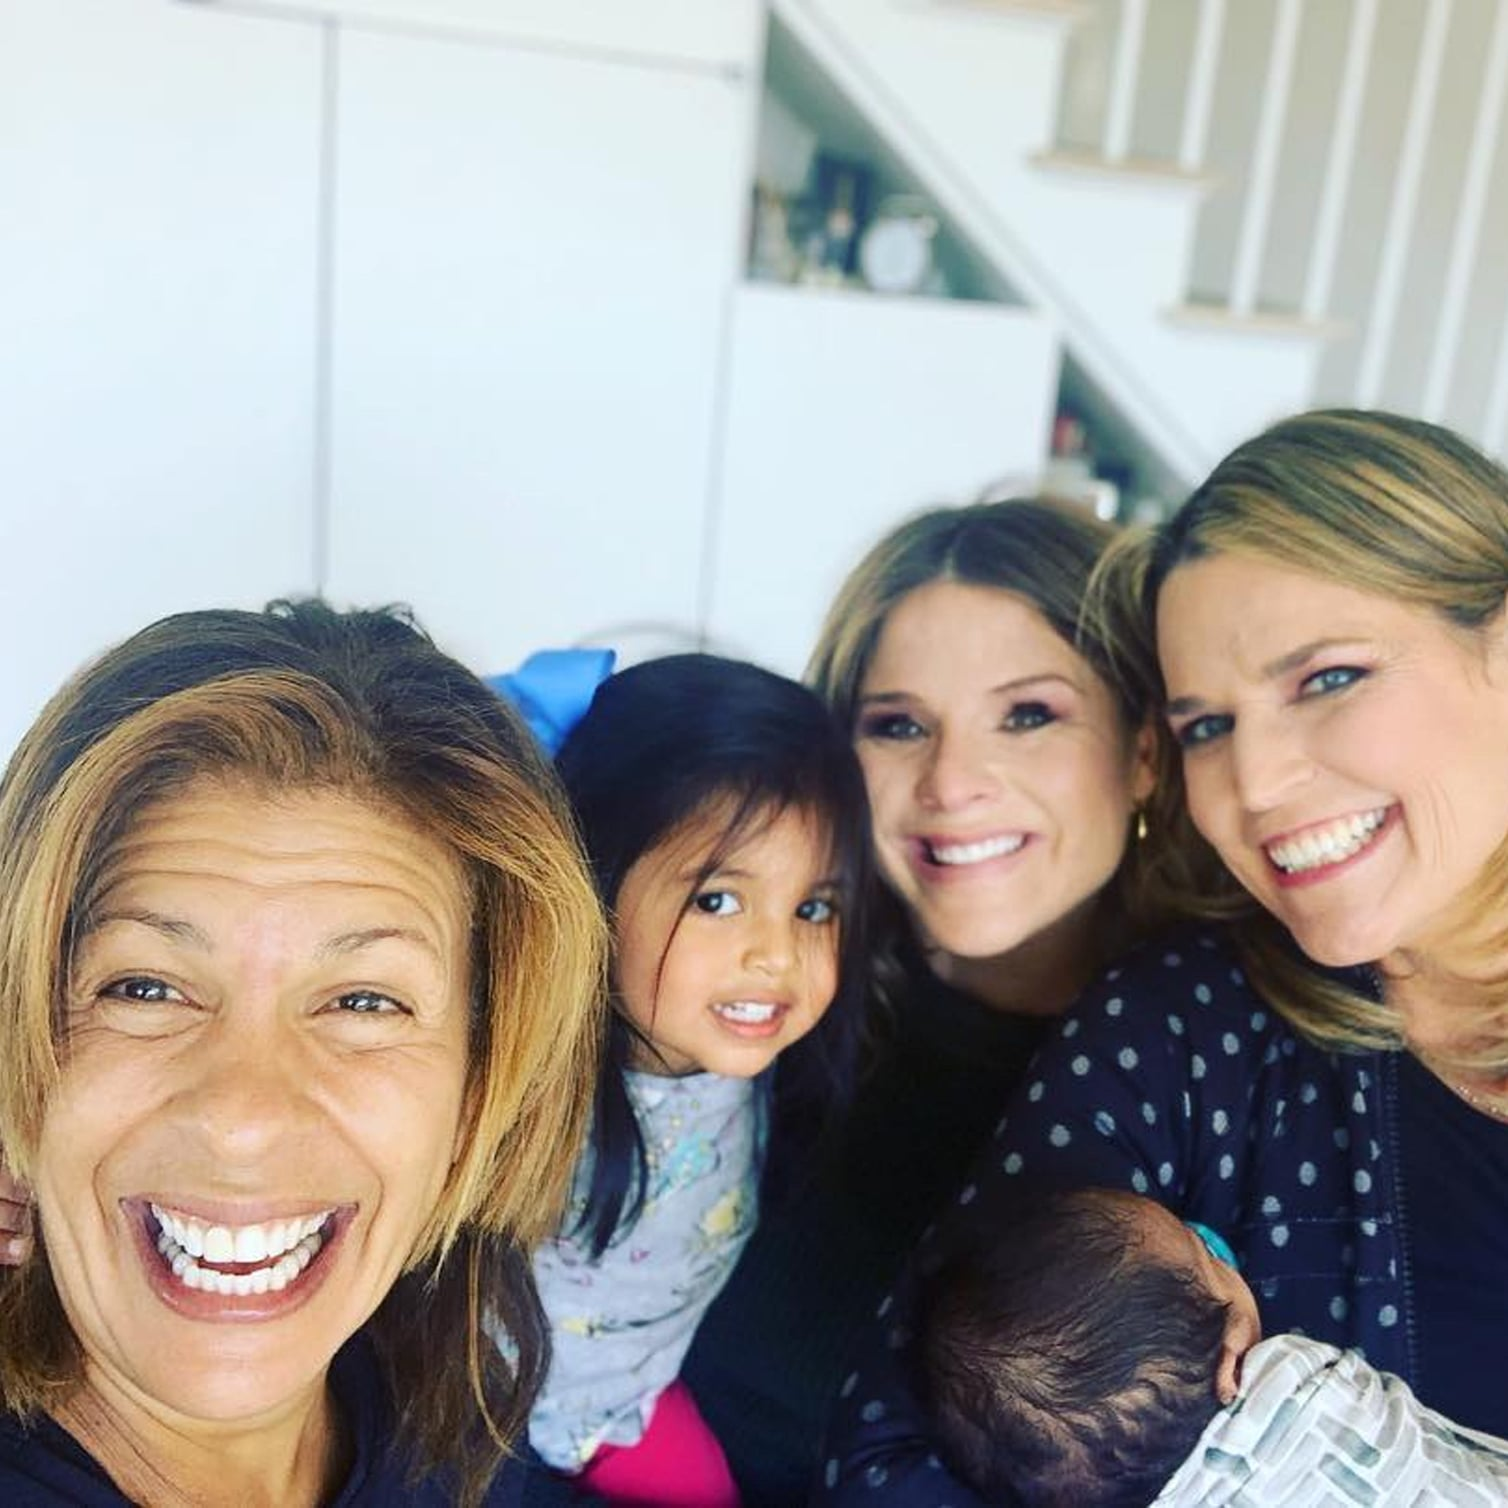 Savannah Guthrie And Jenna Bush Hager Quotes About Hope Kotb Popsugar Family